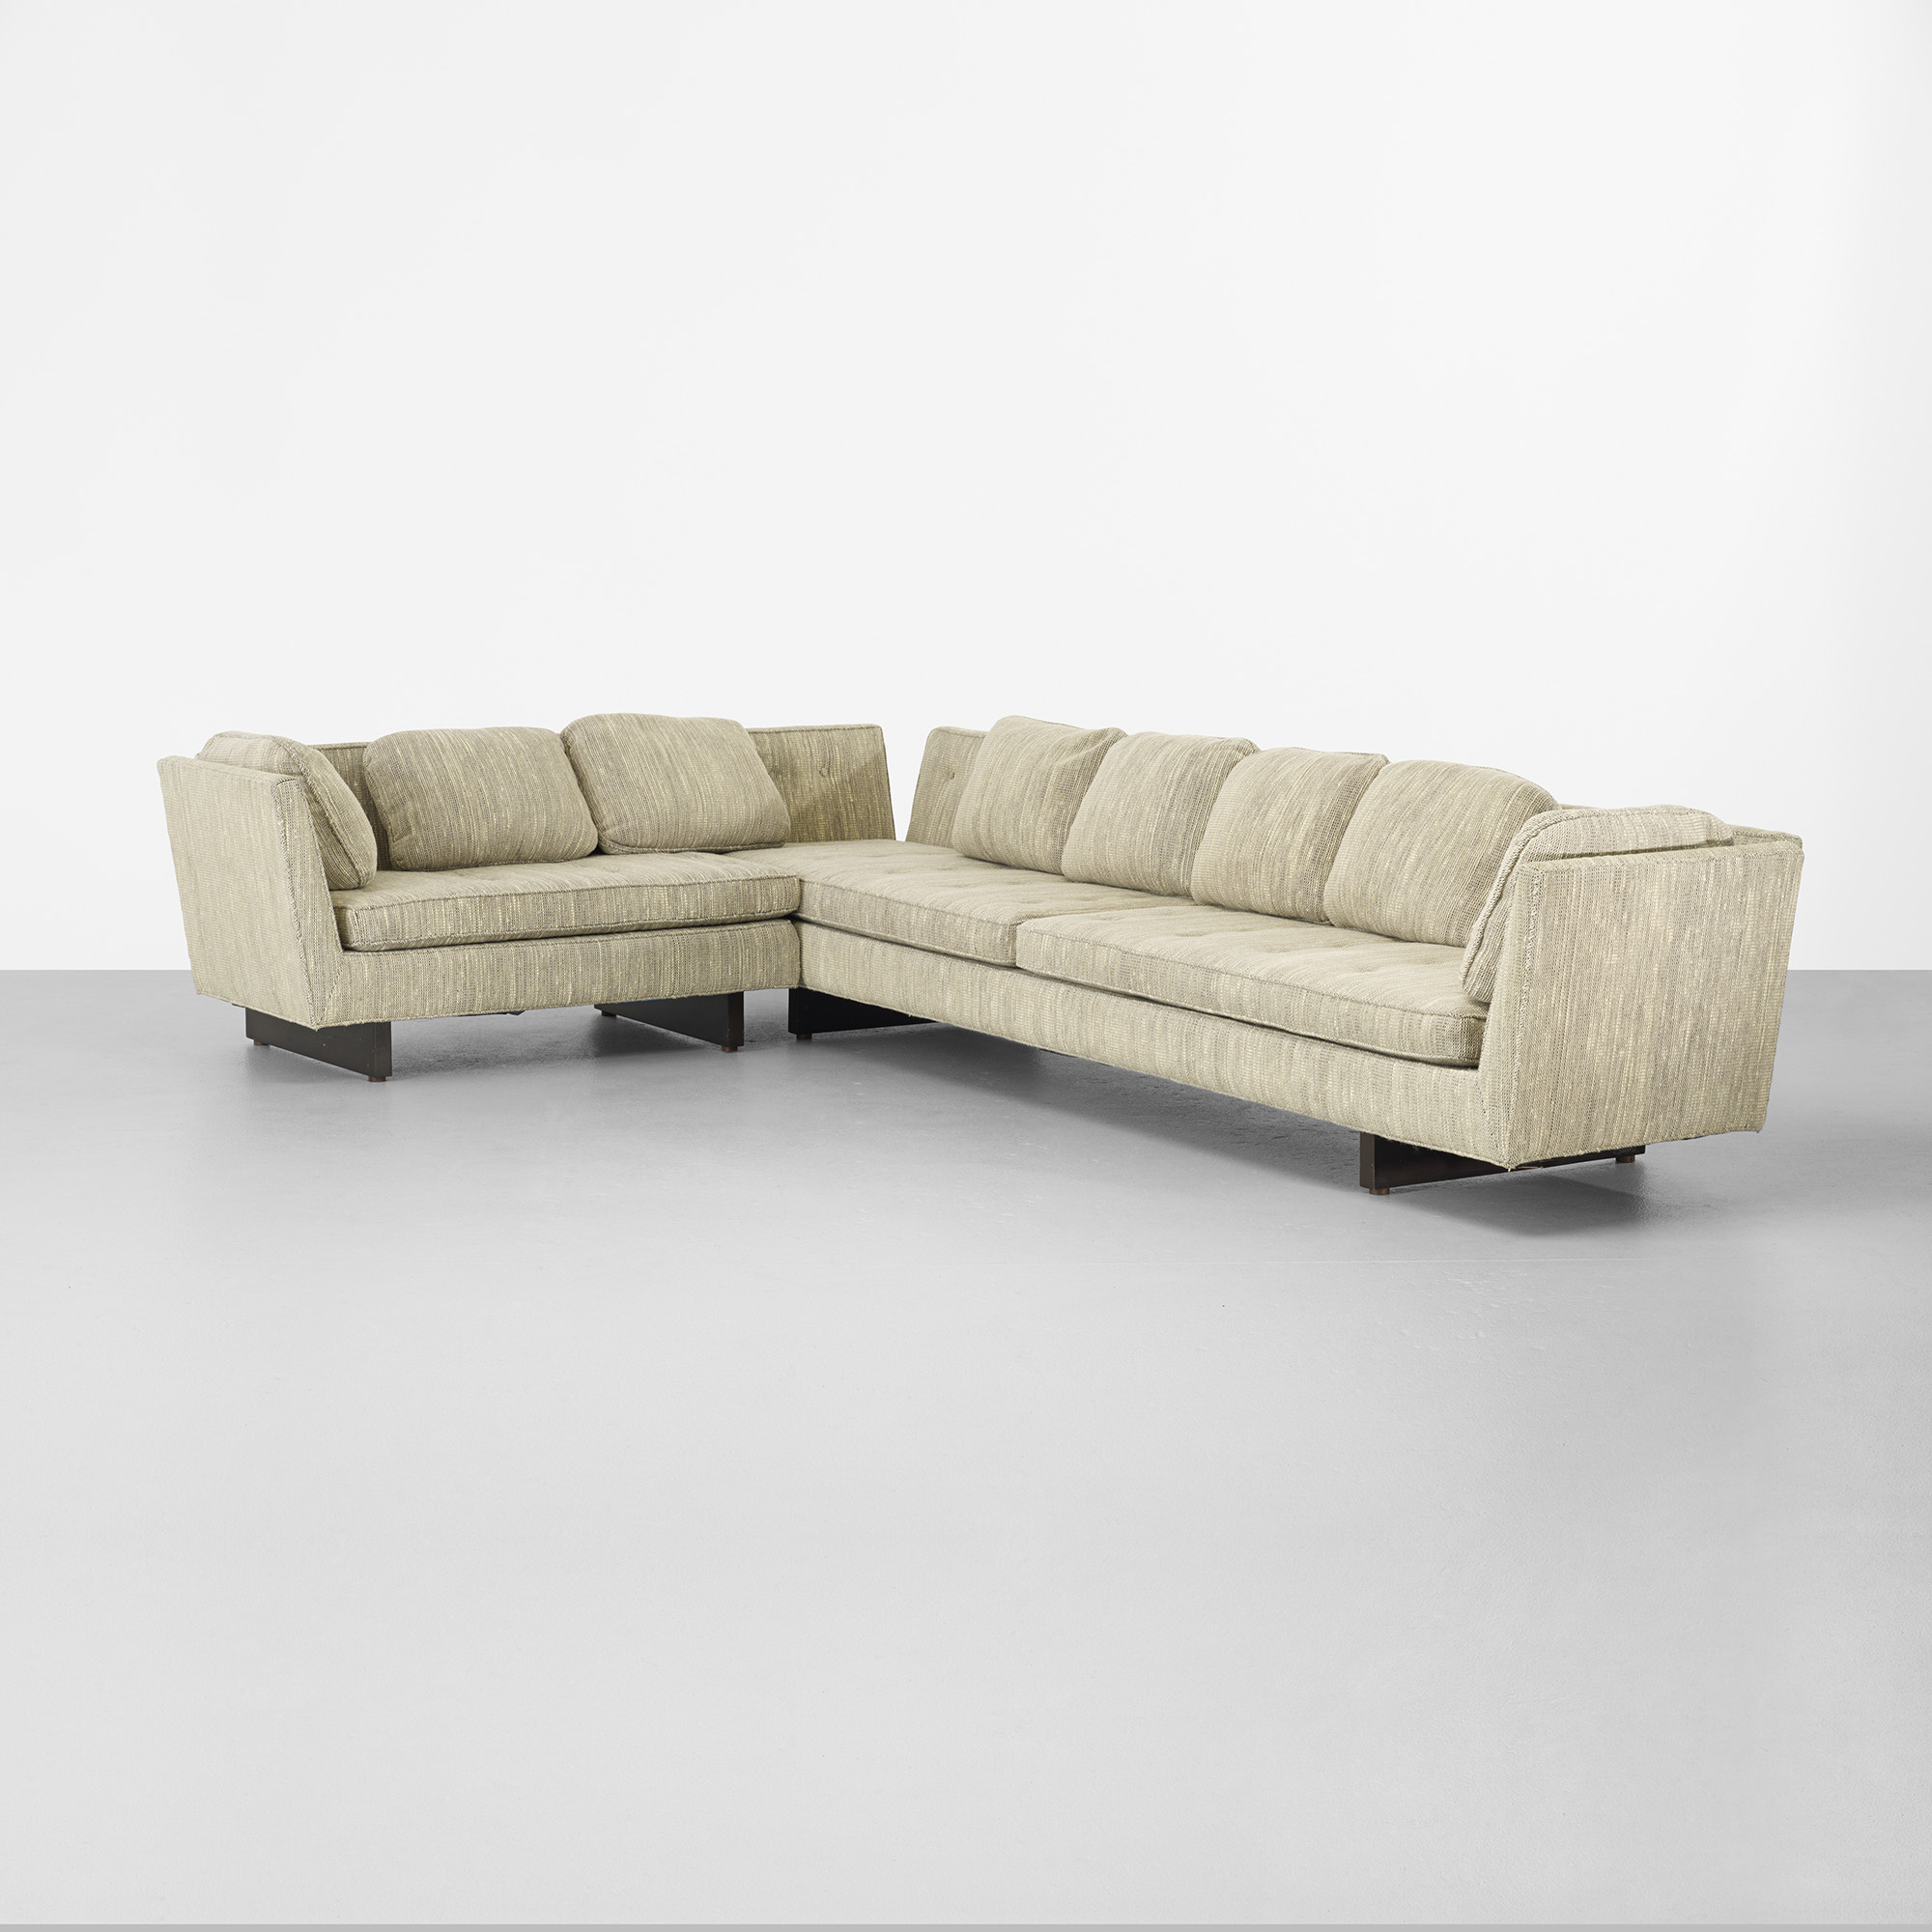 294 Edward Wormley sectional sofa Modern Design 28 March